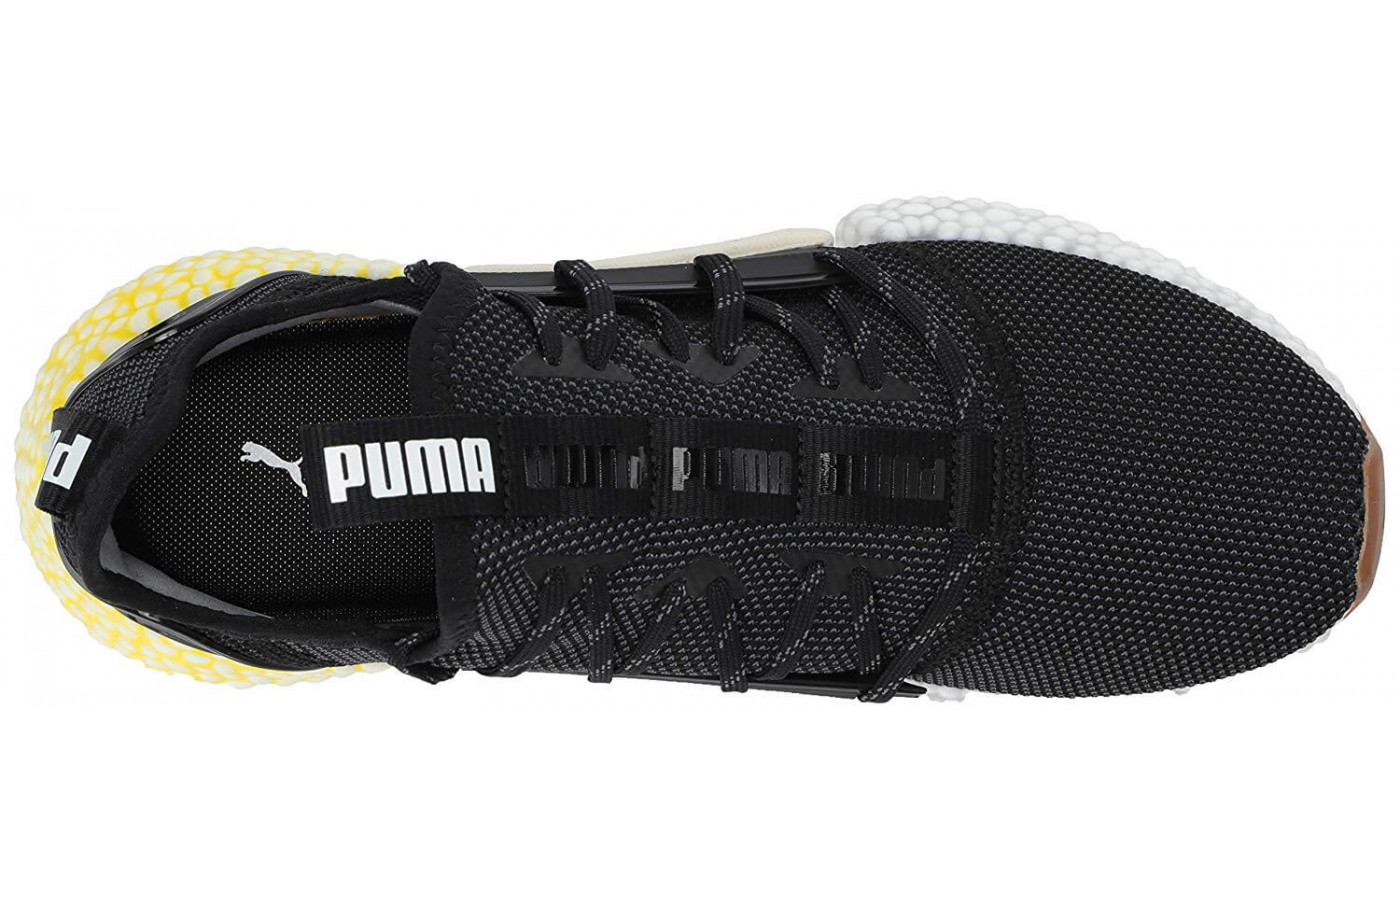 Puma Hybrid Rocket Runner Top